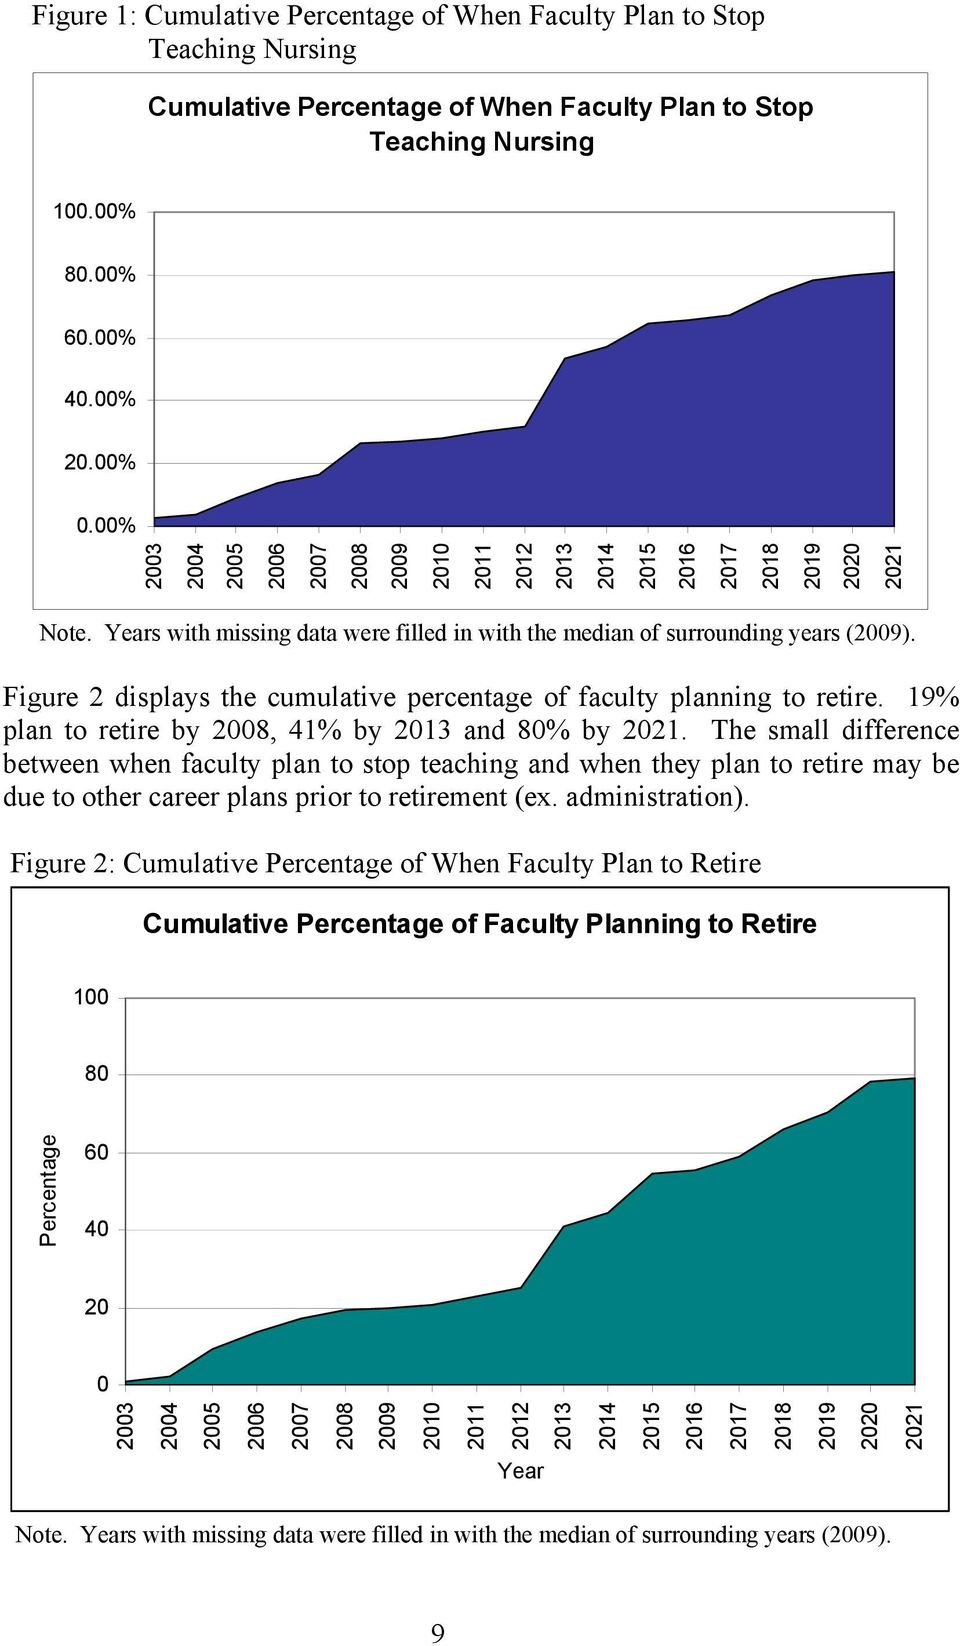 Figure 2 displays the cumulative percentage of faculty planning to retire. 19% plan to retire by 2008, 41% by 2013 and 80% by 2021.